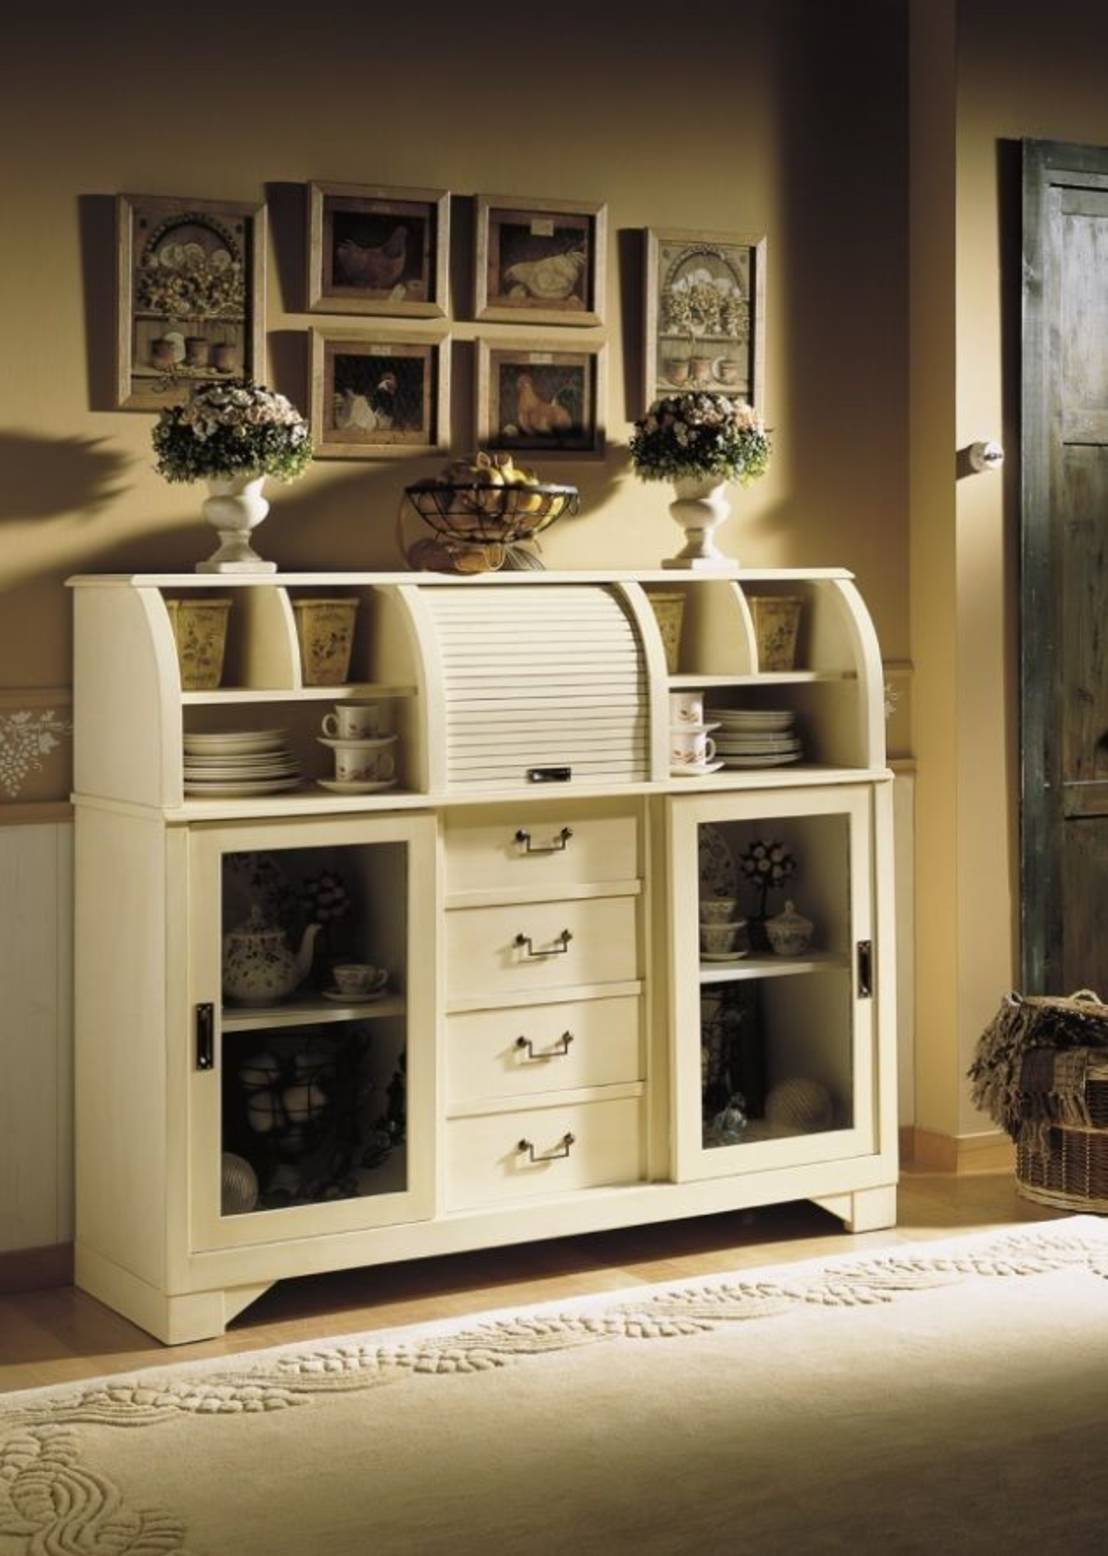 10 impresionantes muebles de estilo colonial for Muebles estilo colonial